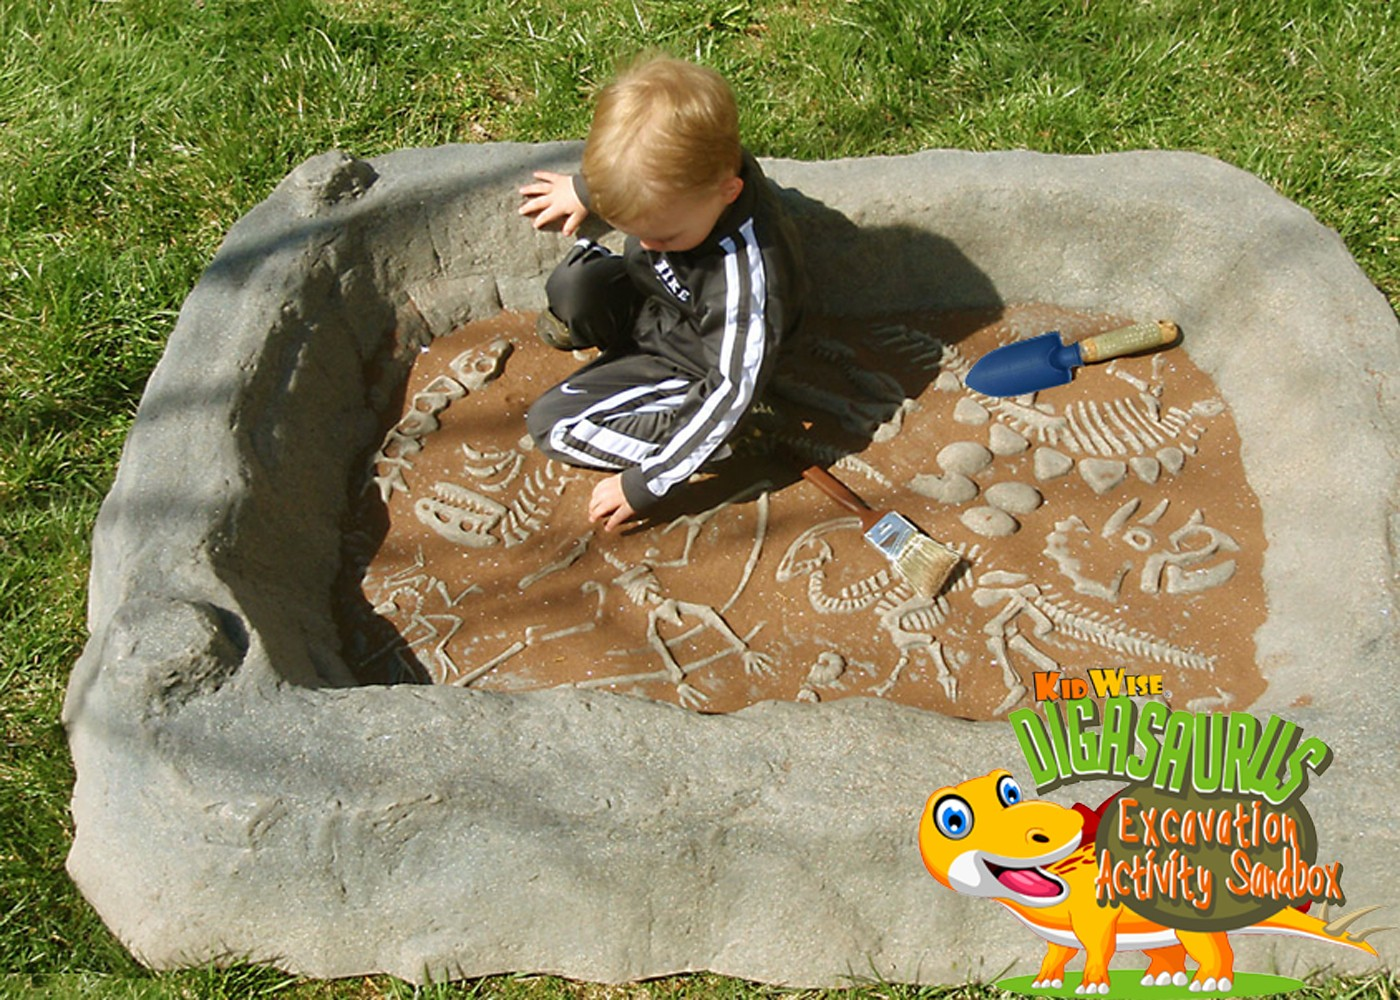 Digasaurus Activity Sandbox - Dinosaur Excavation Activity - Pre-Order for 4/15/19 Shipping